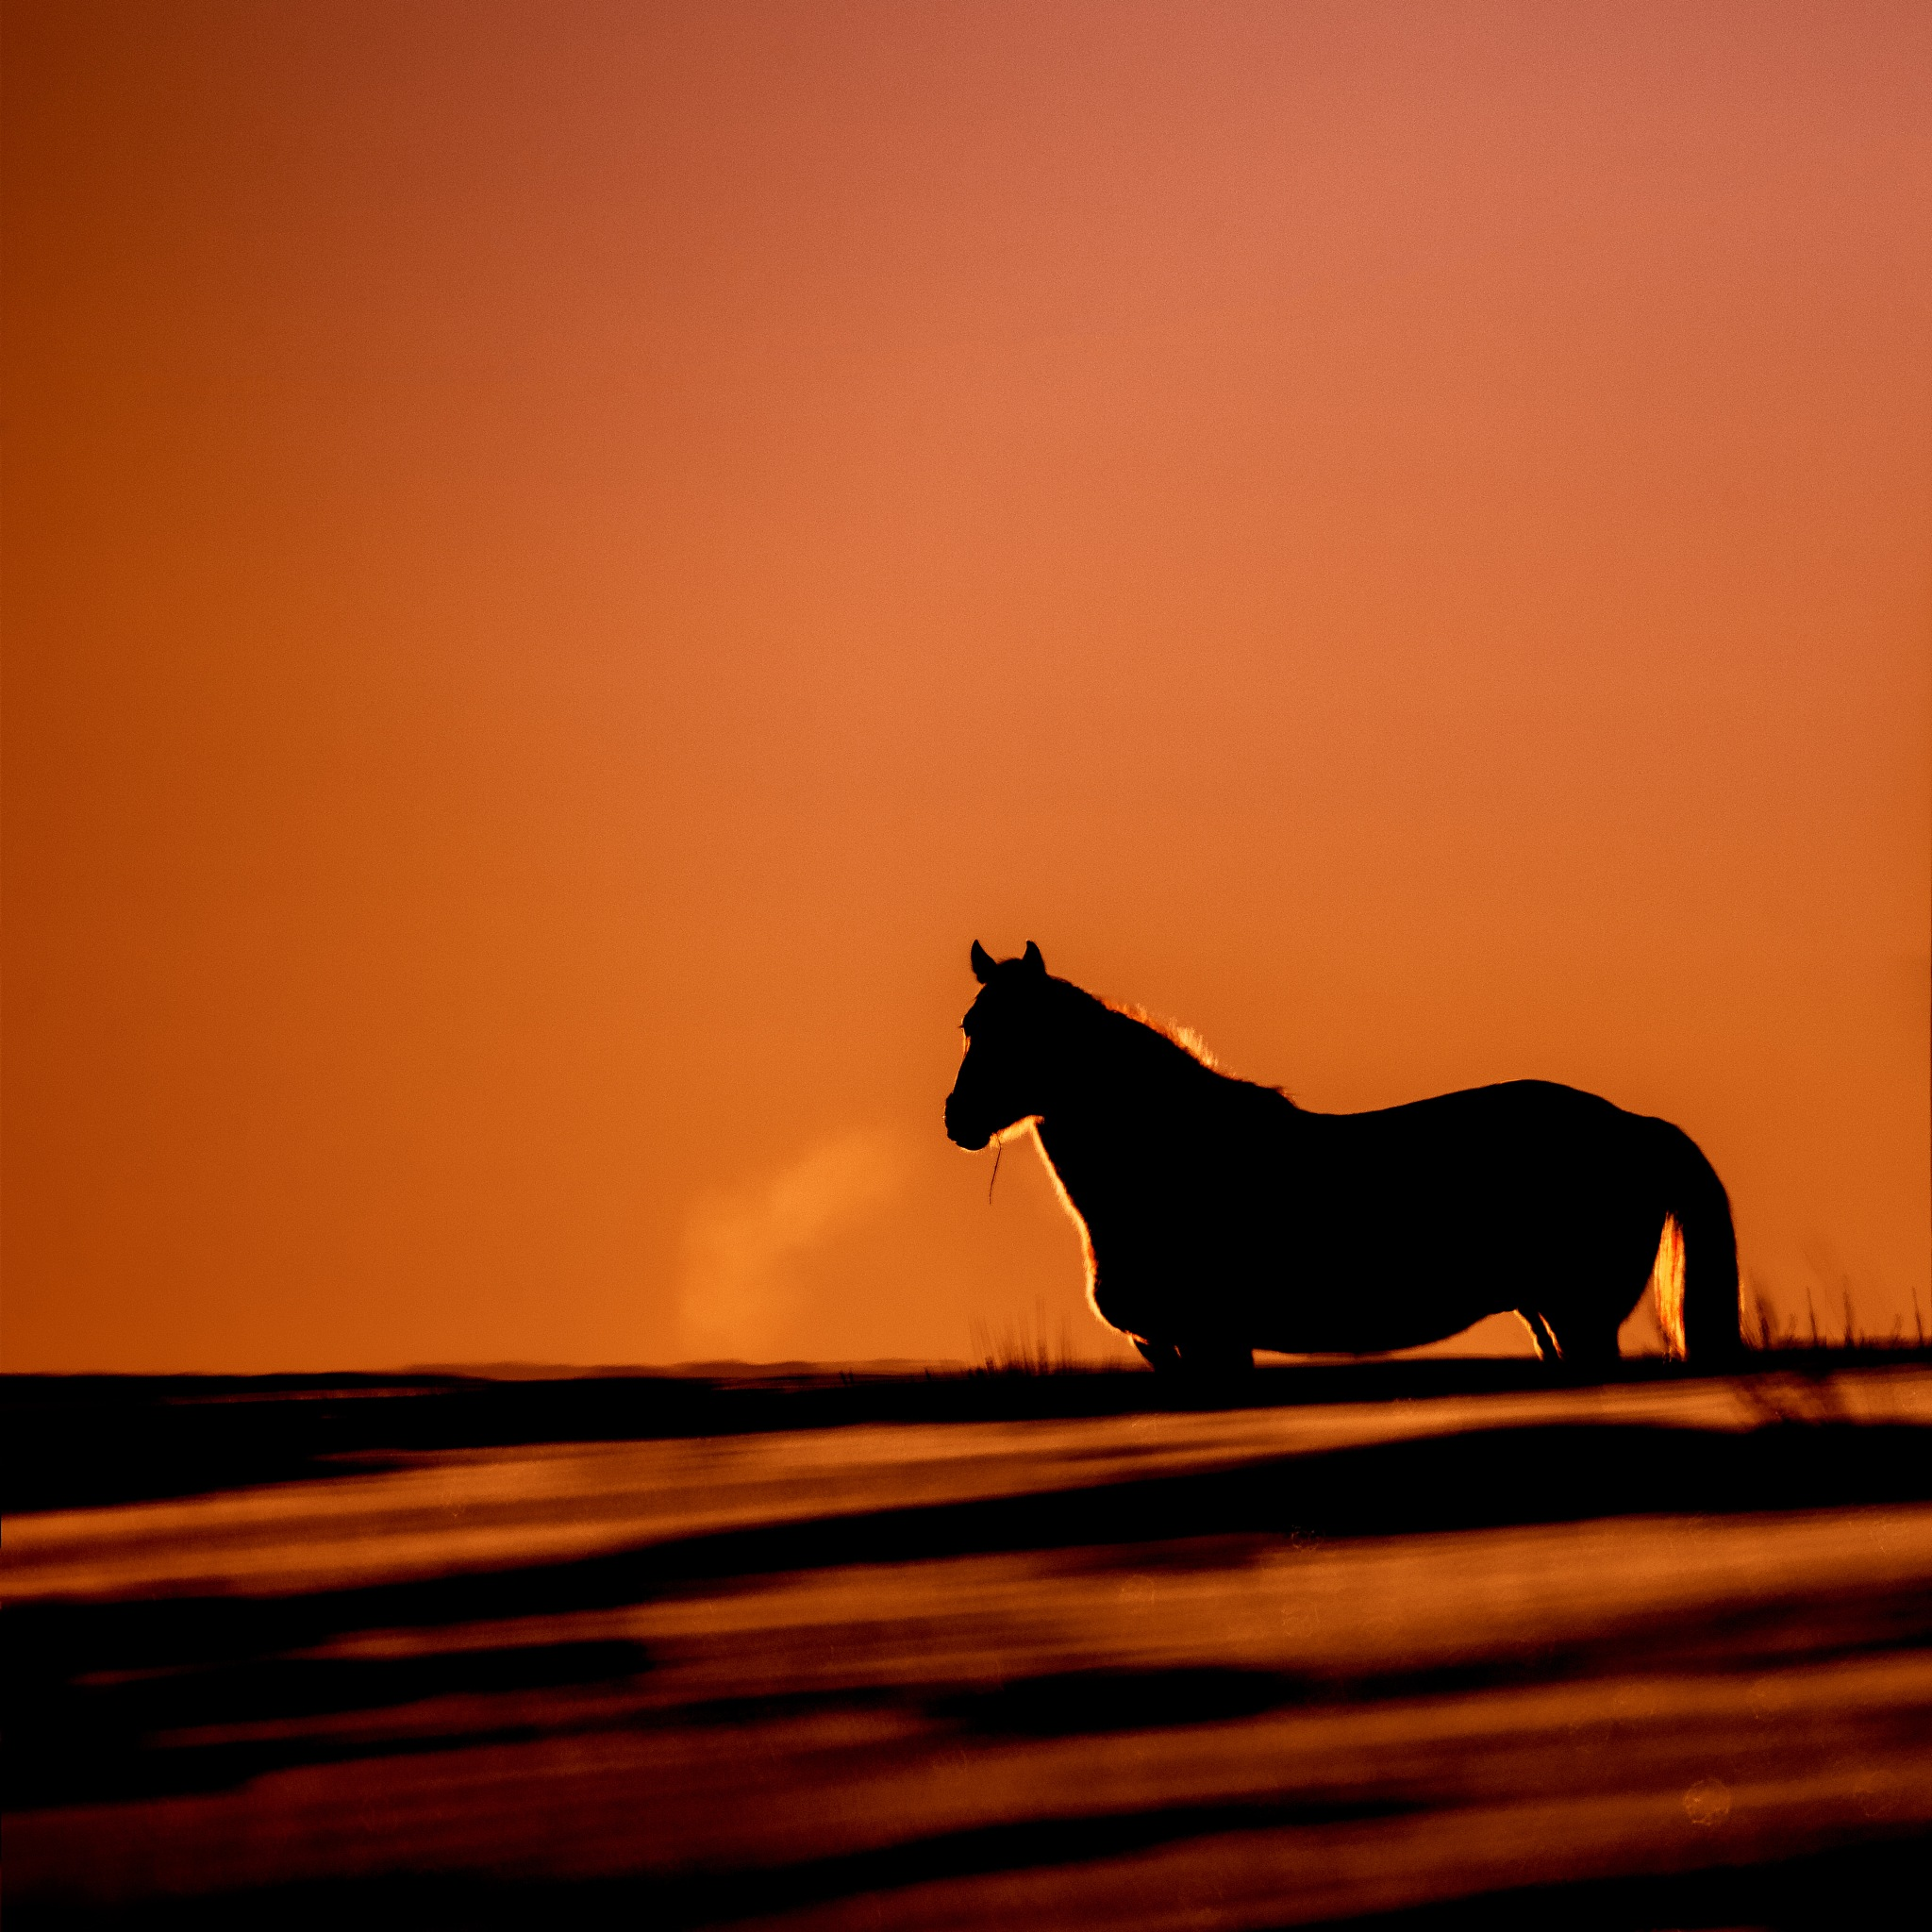 Horse in red sunset by Dianachang